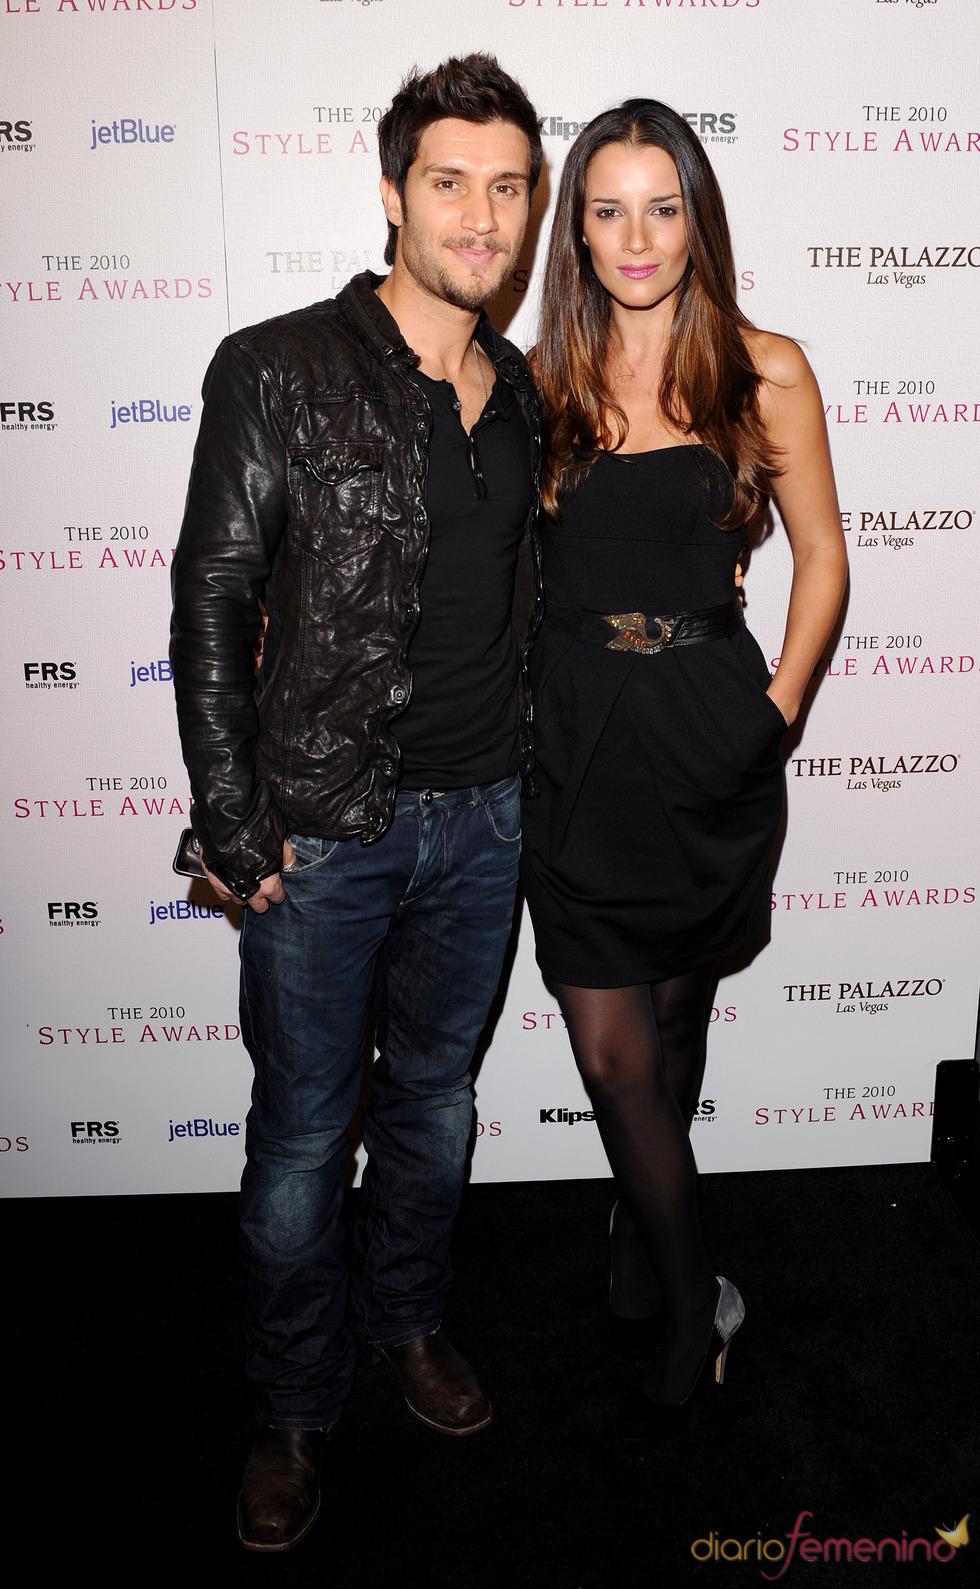 Michael Lombardi en los Premios Hollywood Style 2010